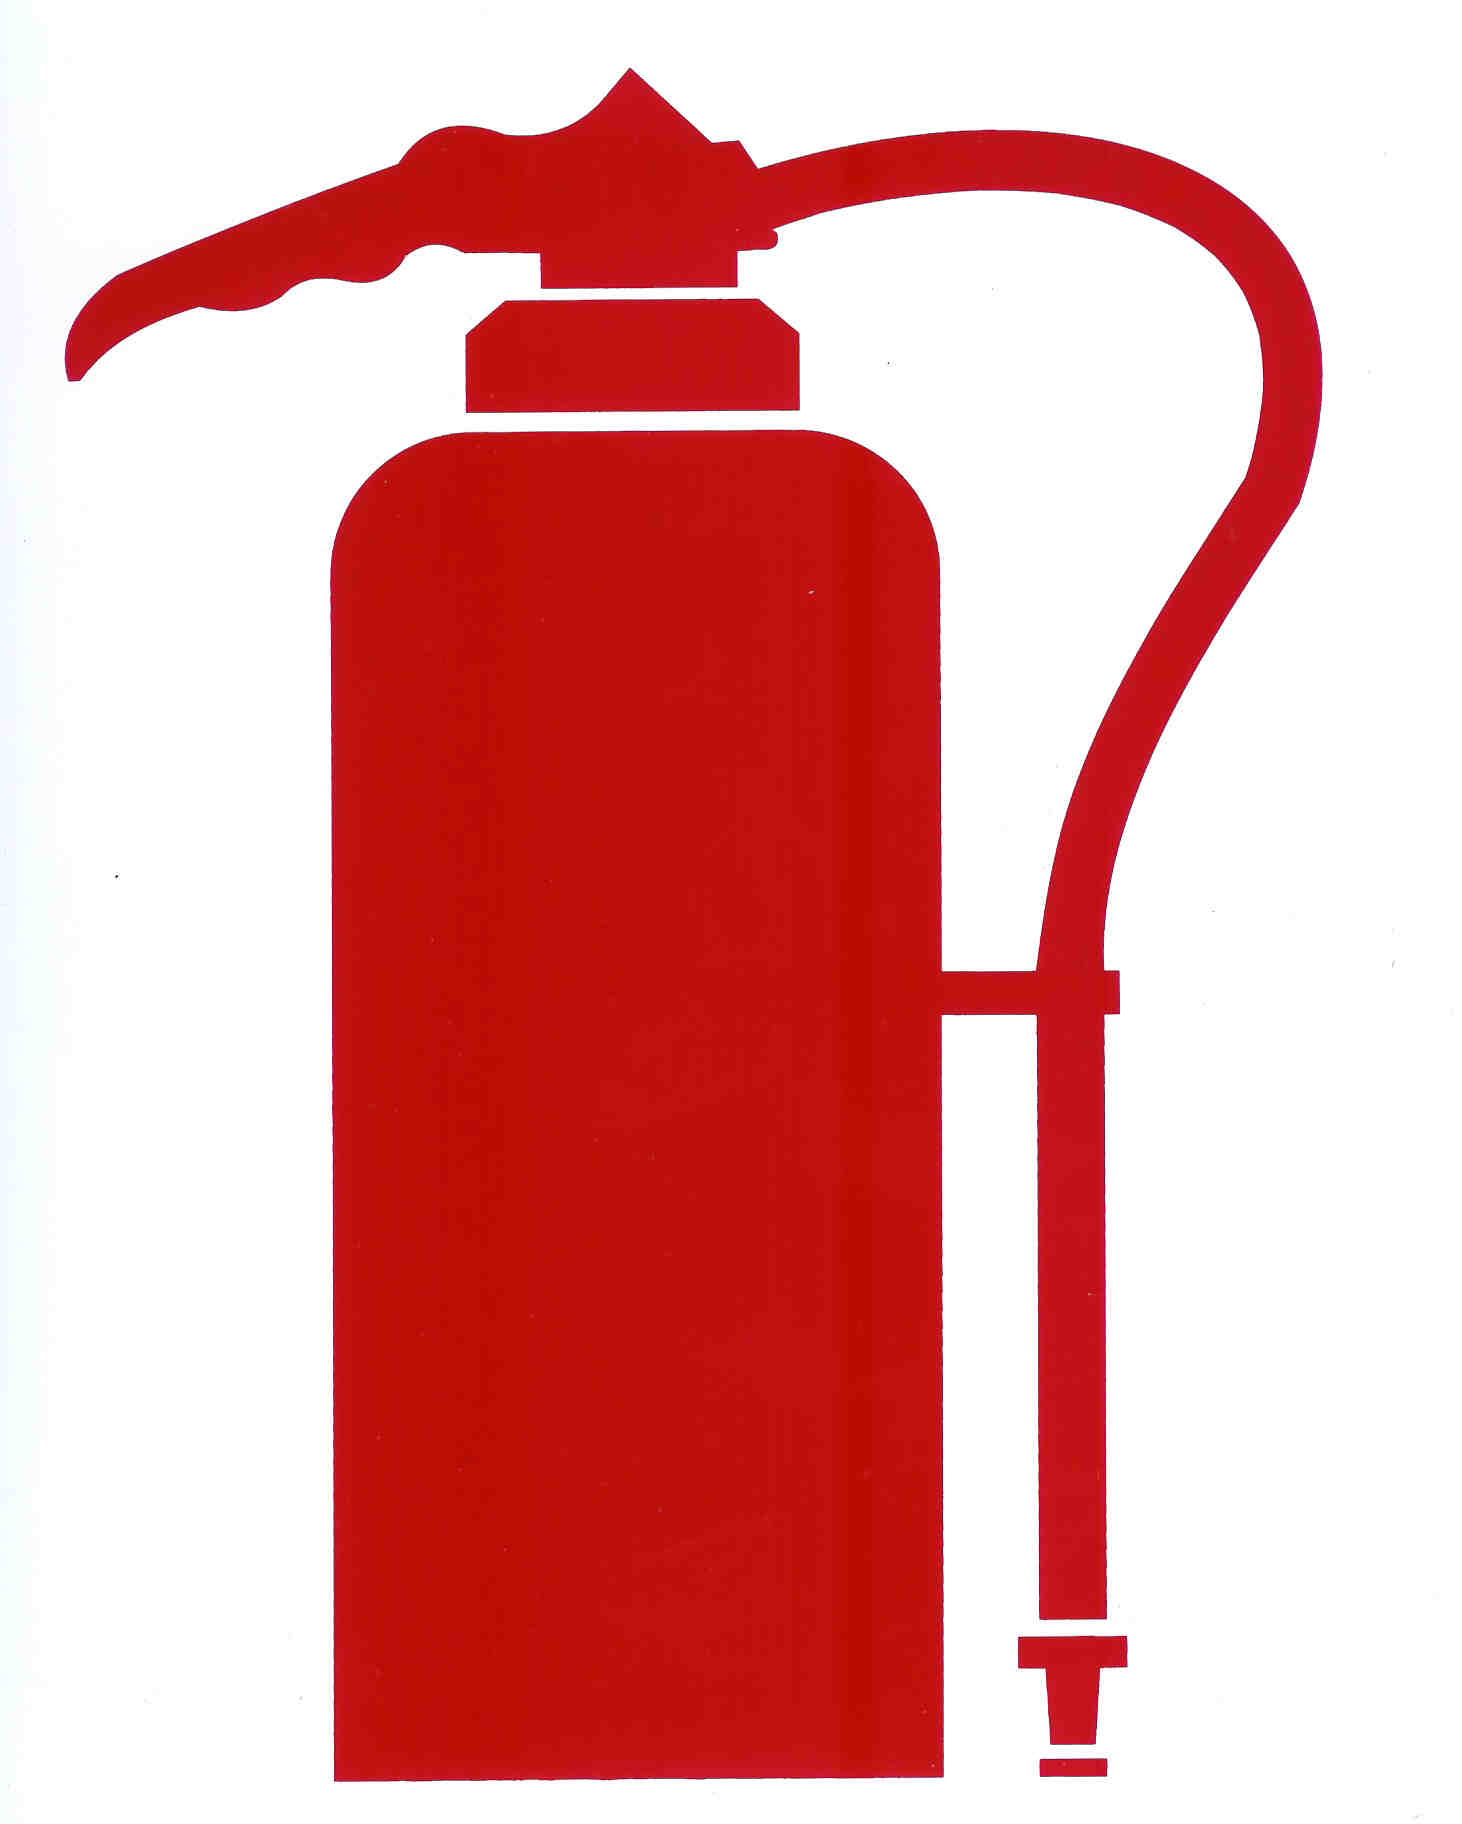 Free fire extinguisher images clipart.